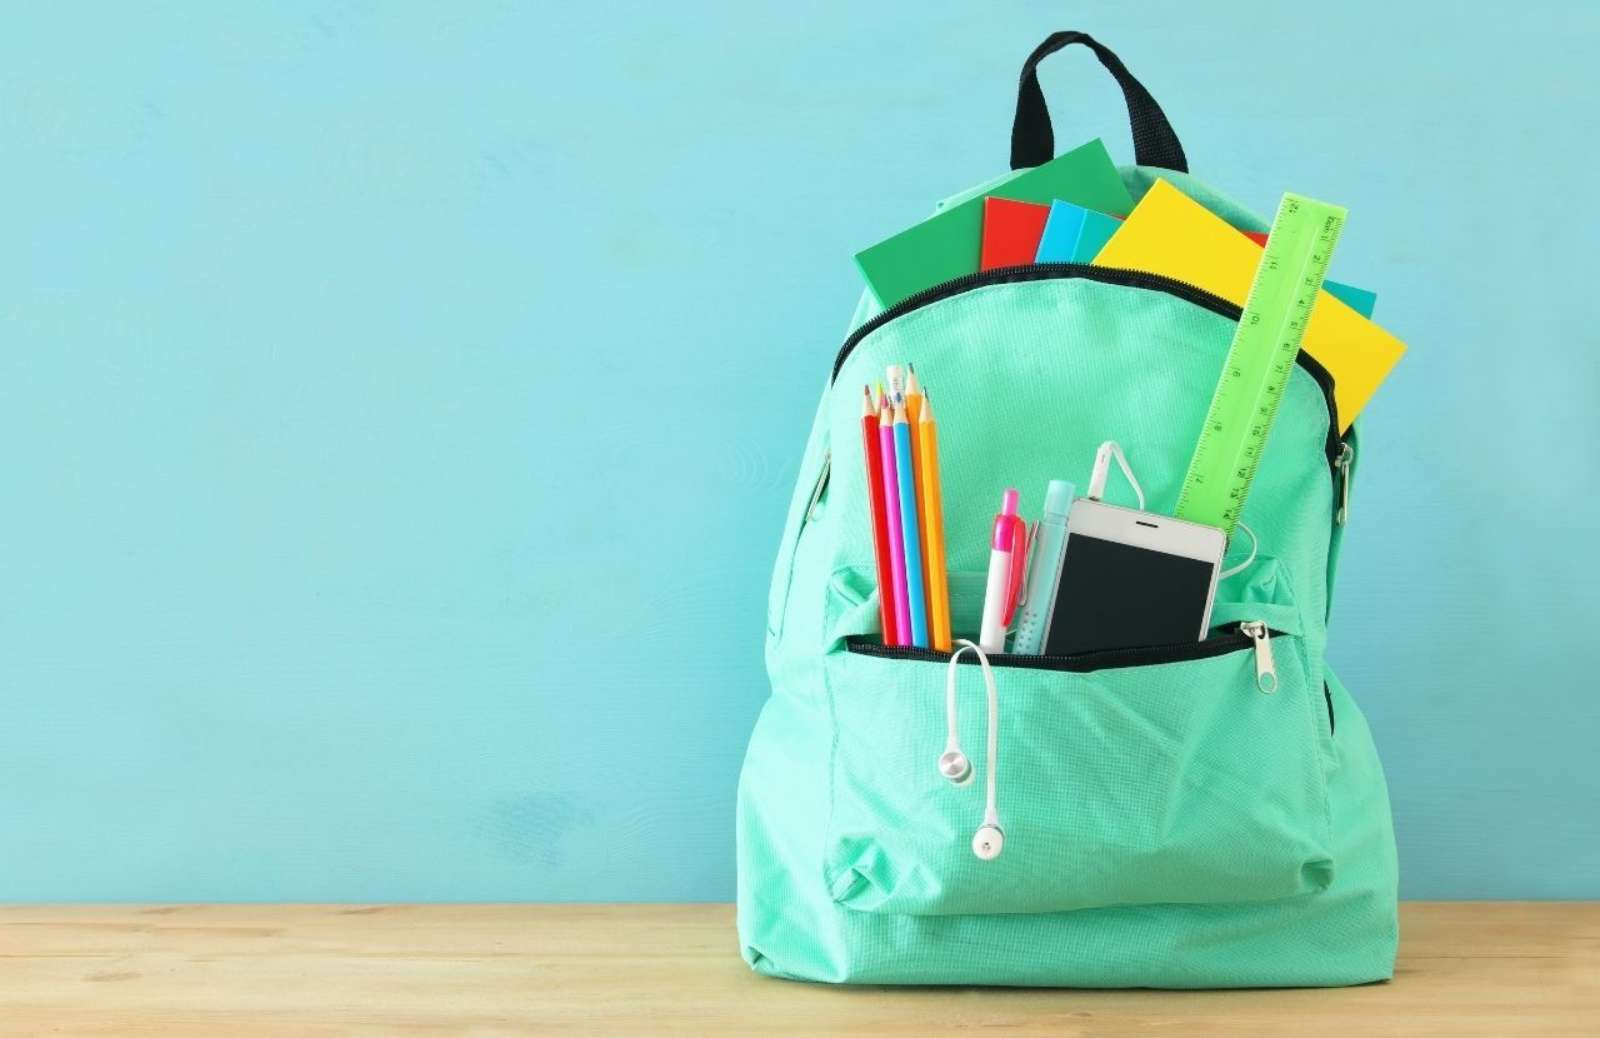 Green backpack filled with school supplies on desk